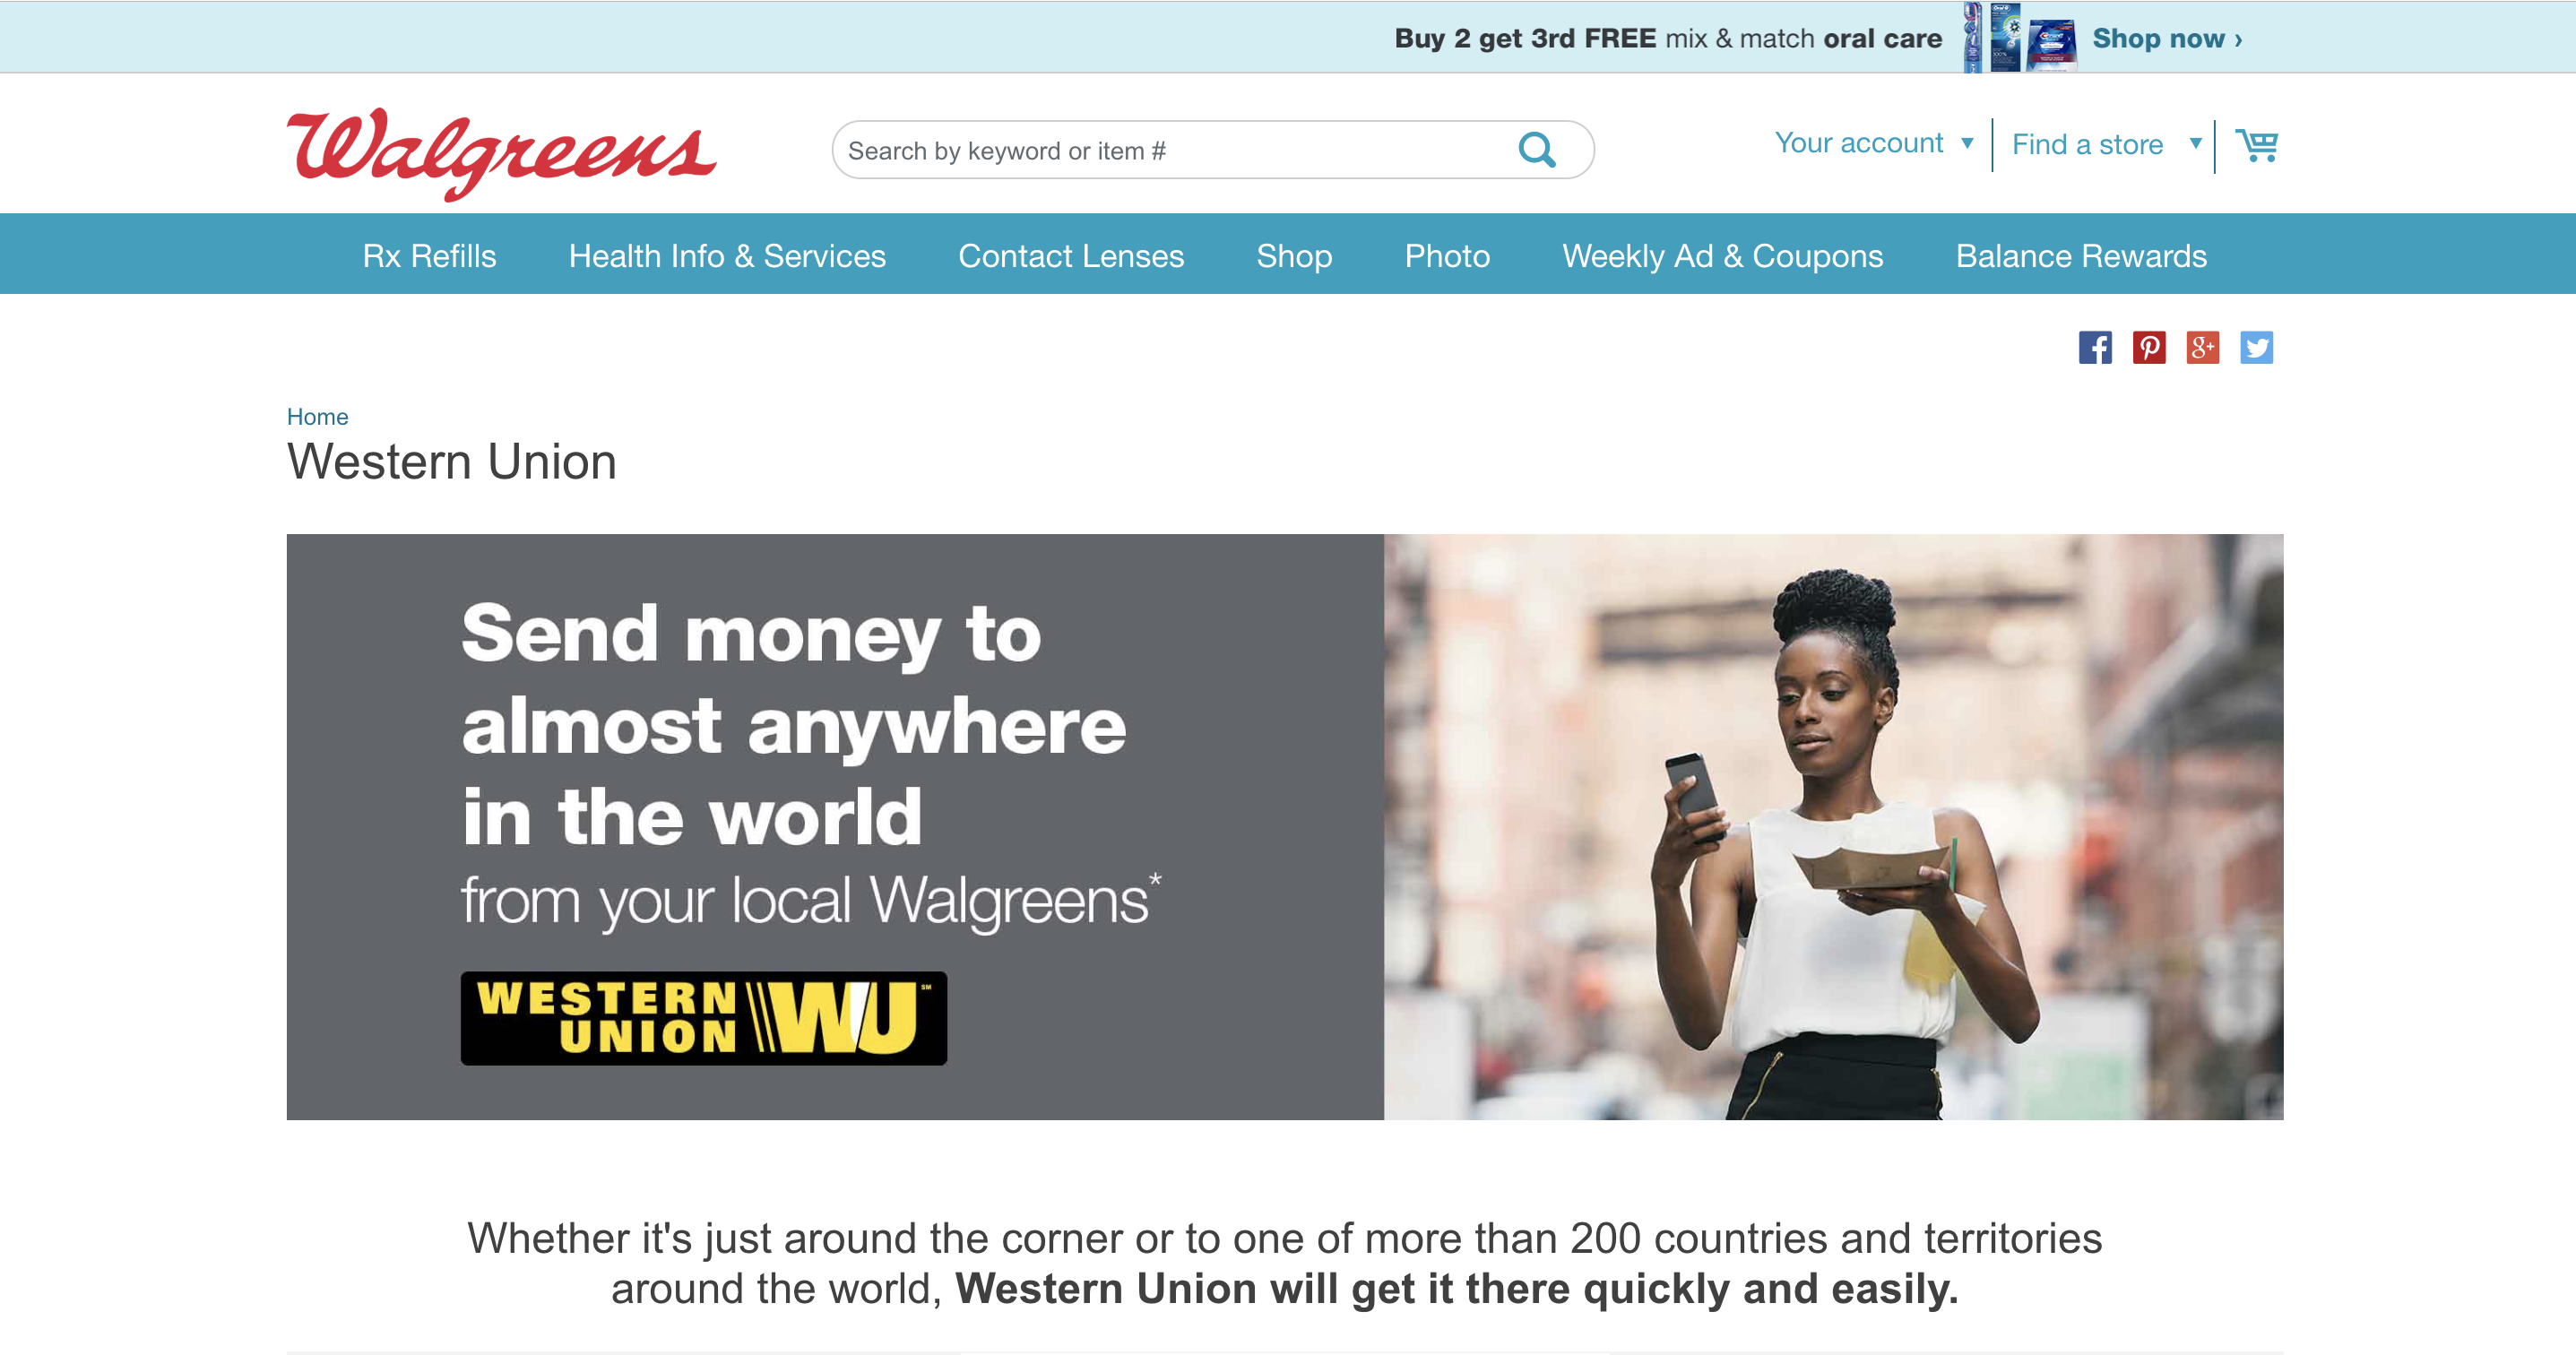 Western Union at Walgreens Landing Page